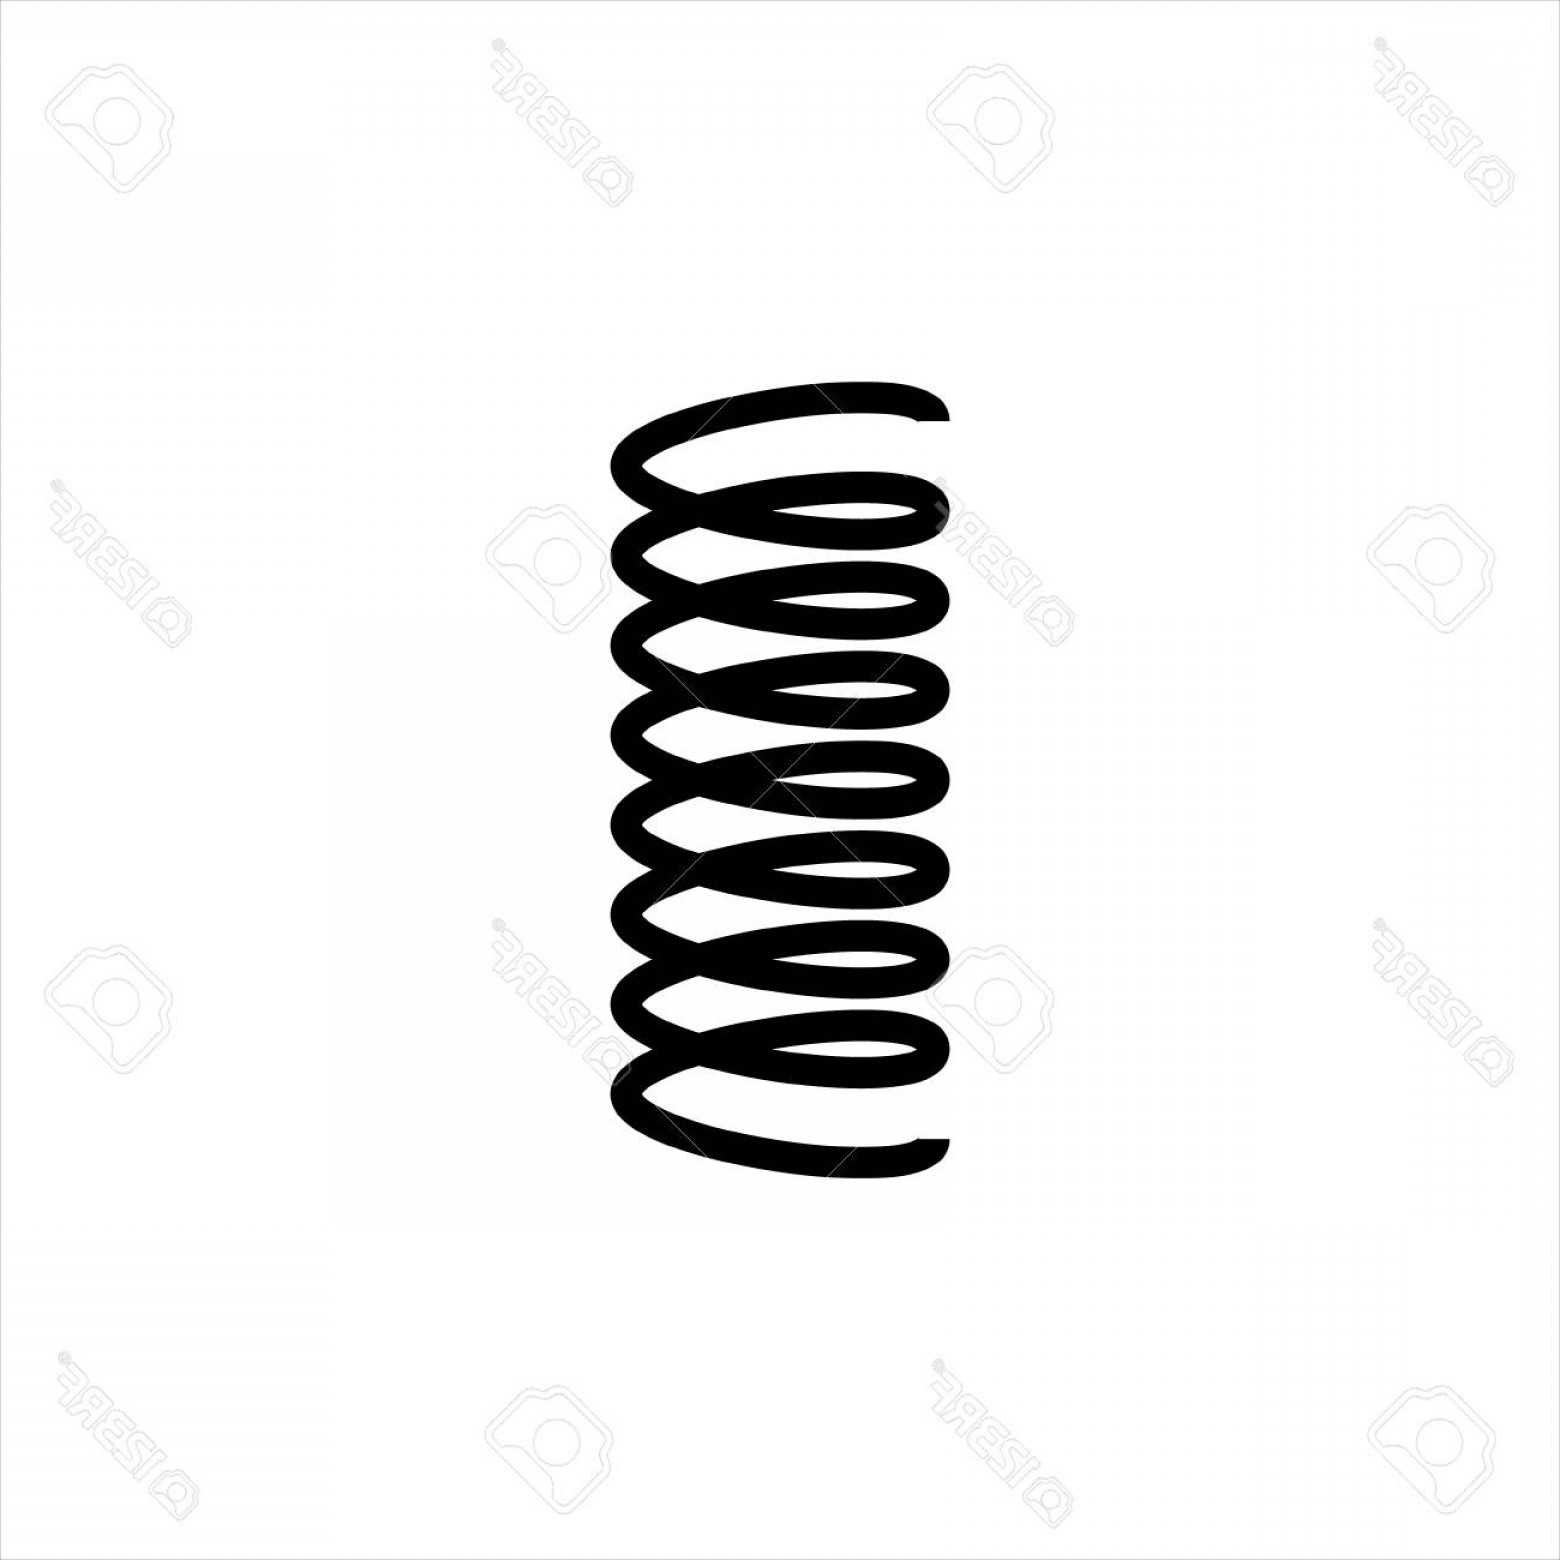 Spring Vector Silhouette: Photostock Vector Vector Illustration Black Silhouette Of Spring Icon Isolated On White Background Metal Spiral Flexib